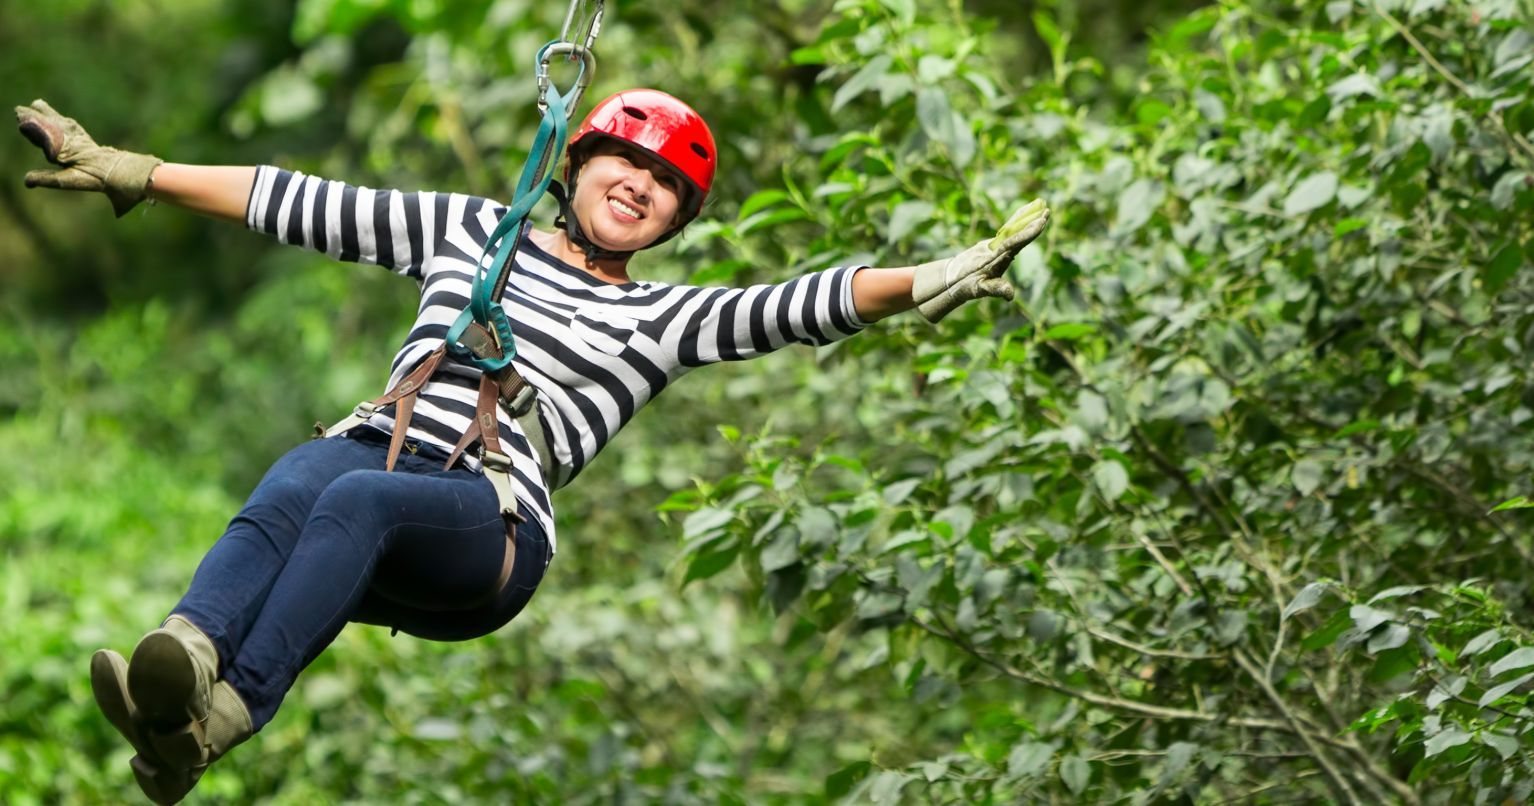 Rocky Mountain Zipline Adventure Denver Tinggly Experience Gifts